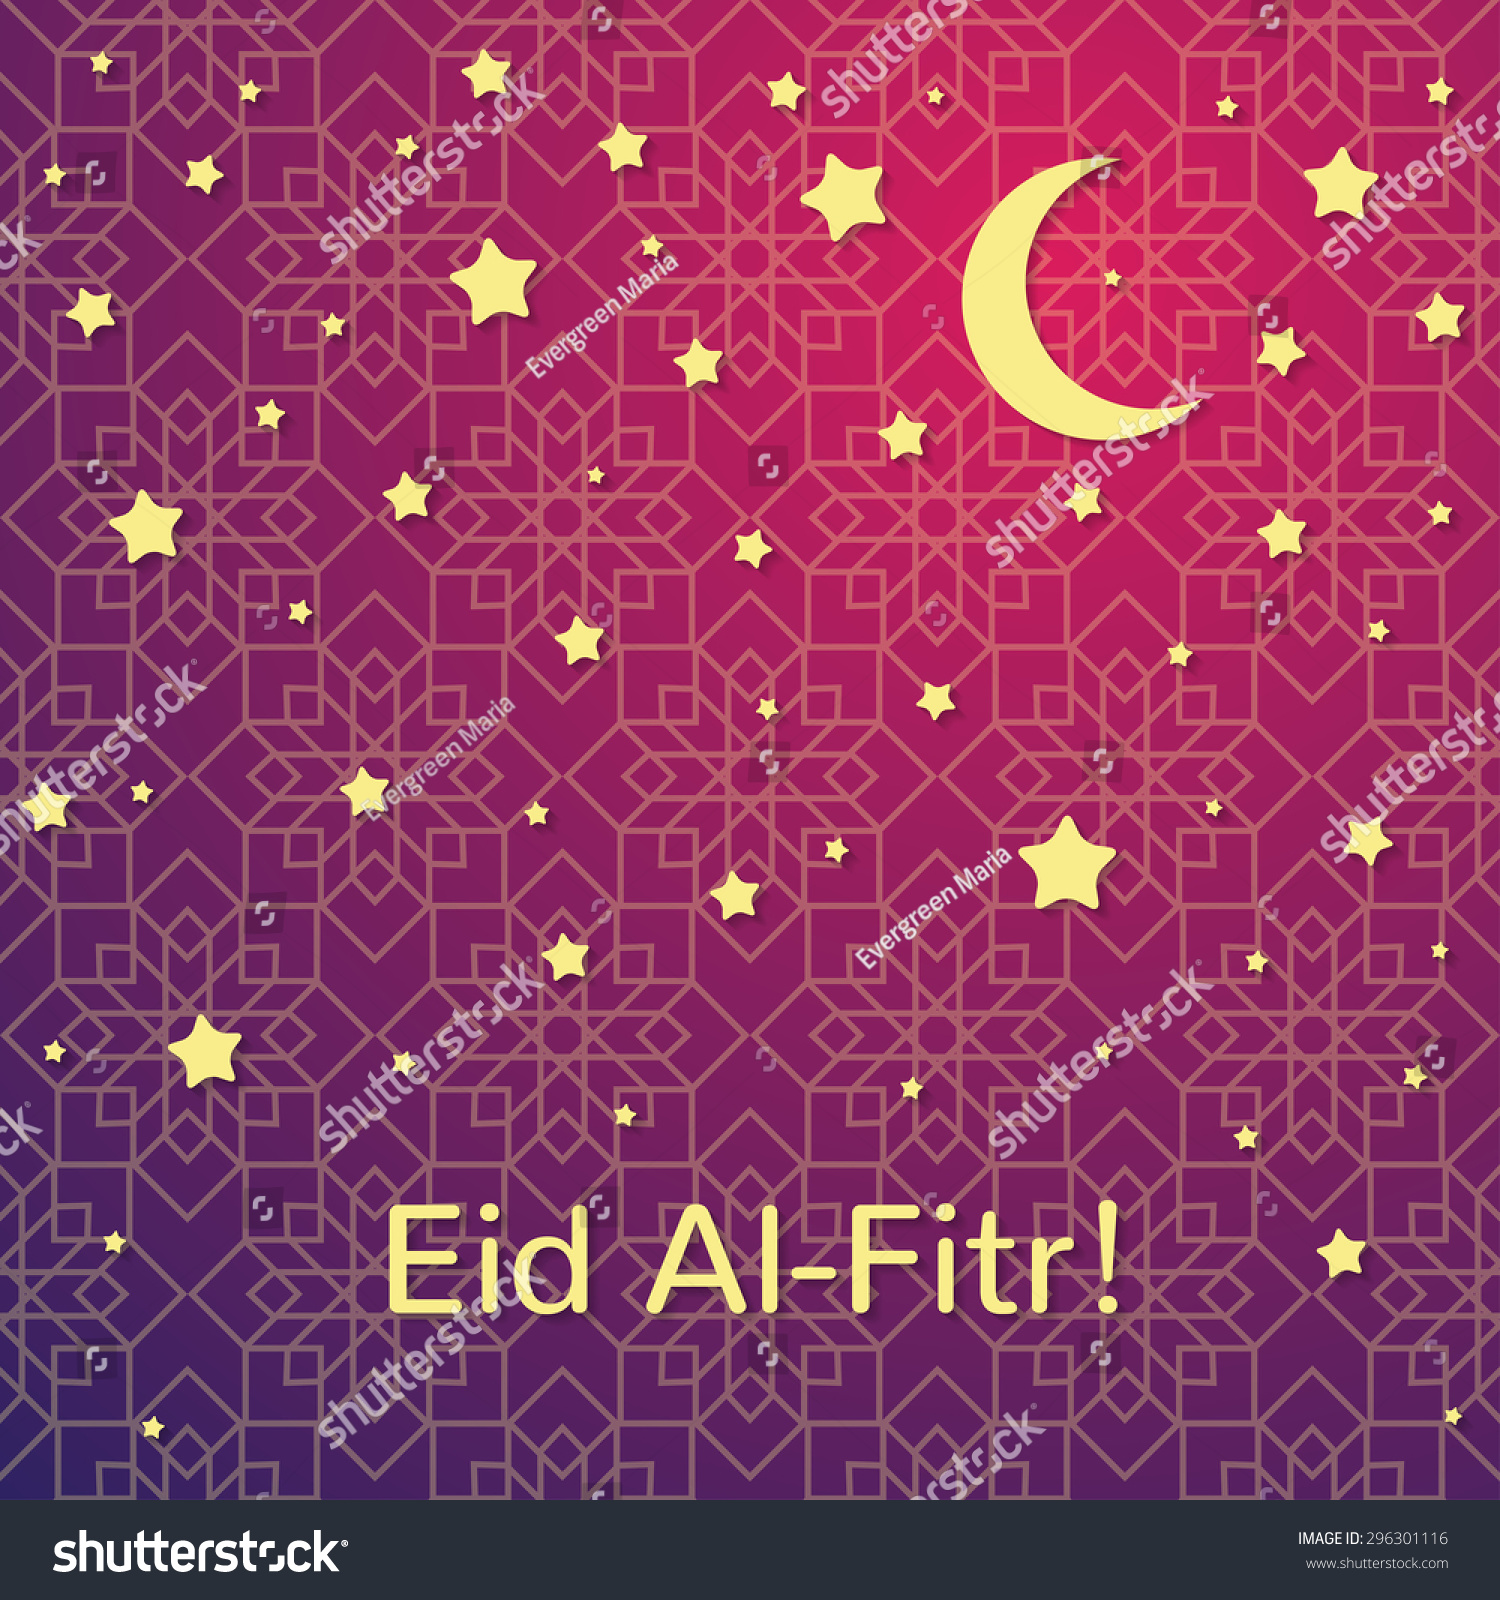 Wonderful Spring Eid Al-Fitr Decorations - stock-vector-muslim-community-festival-eid-al-fitr-celebration-greeting-card-decorated-with-golden-stars-and-296301116  Picture_421422 .jpg